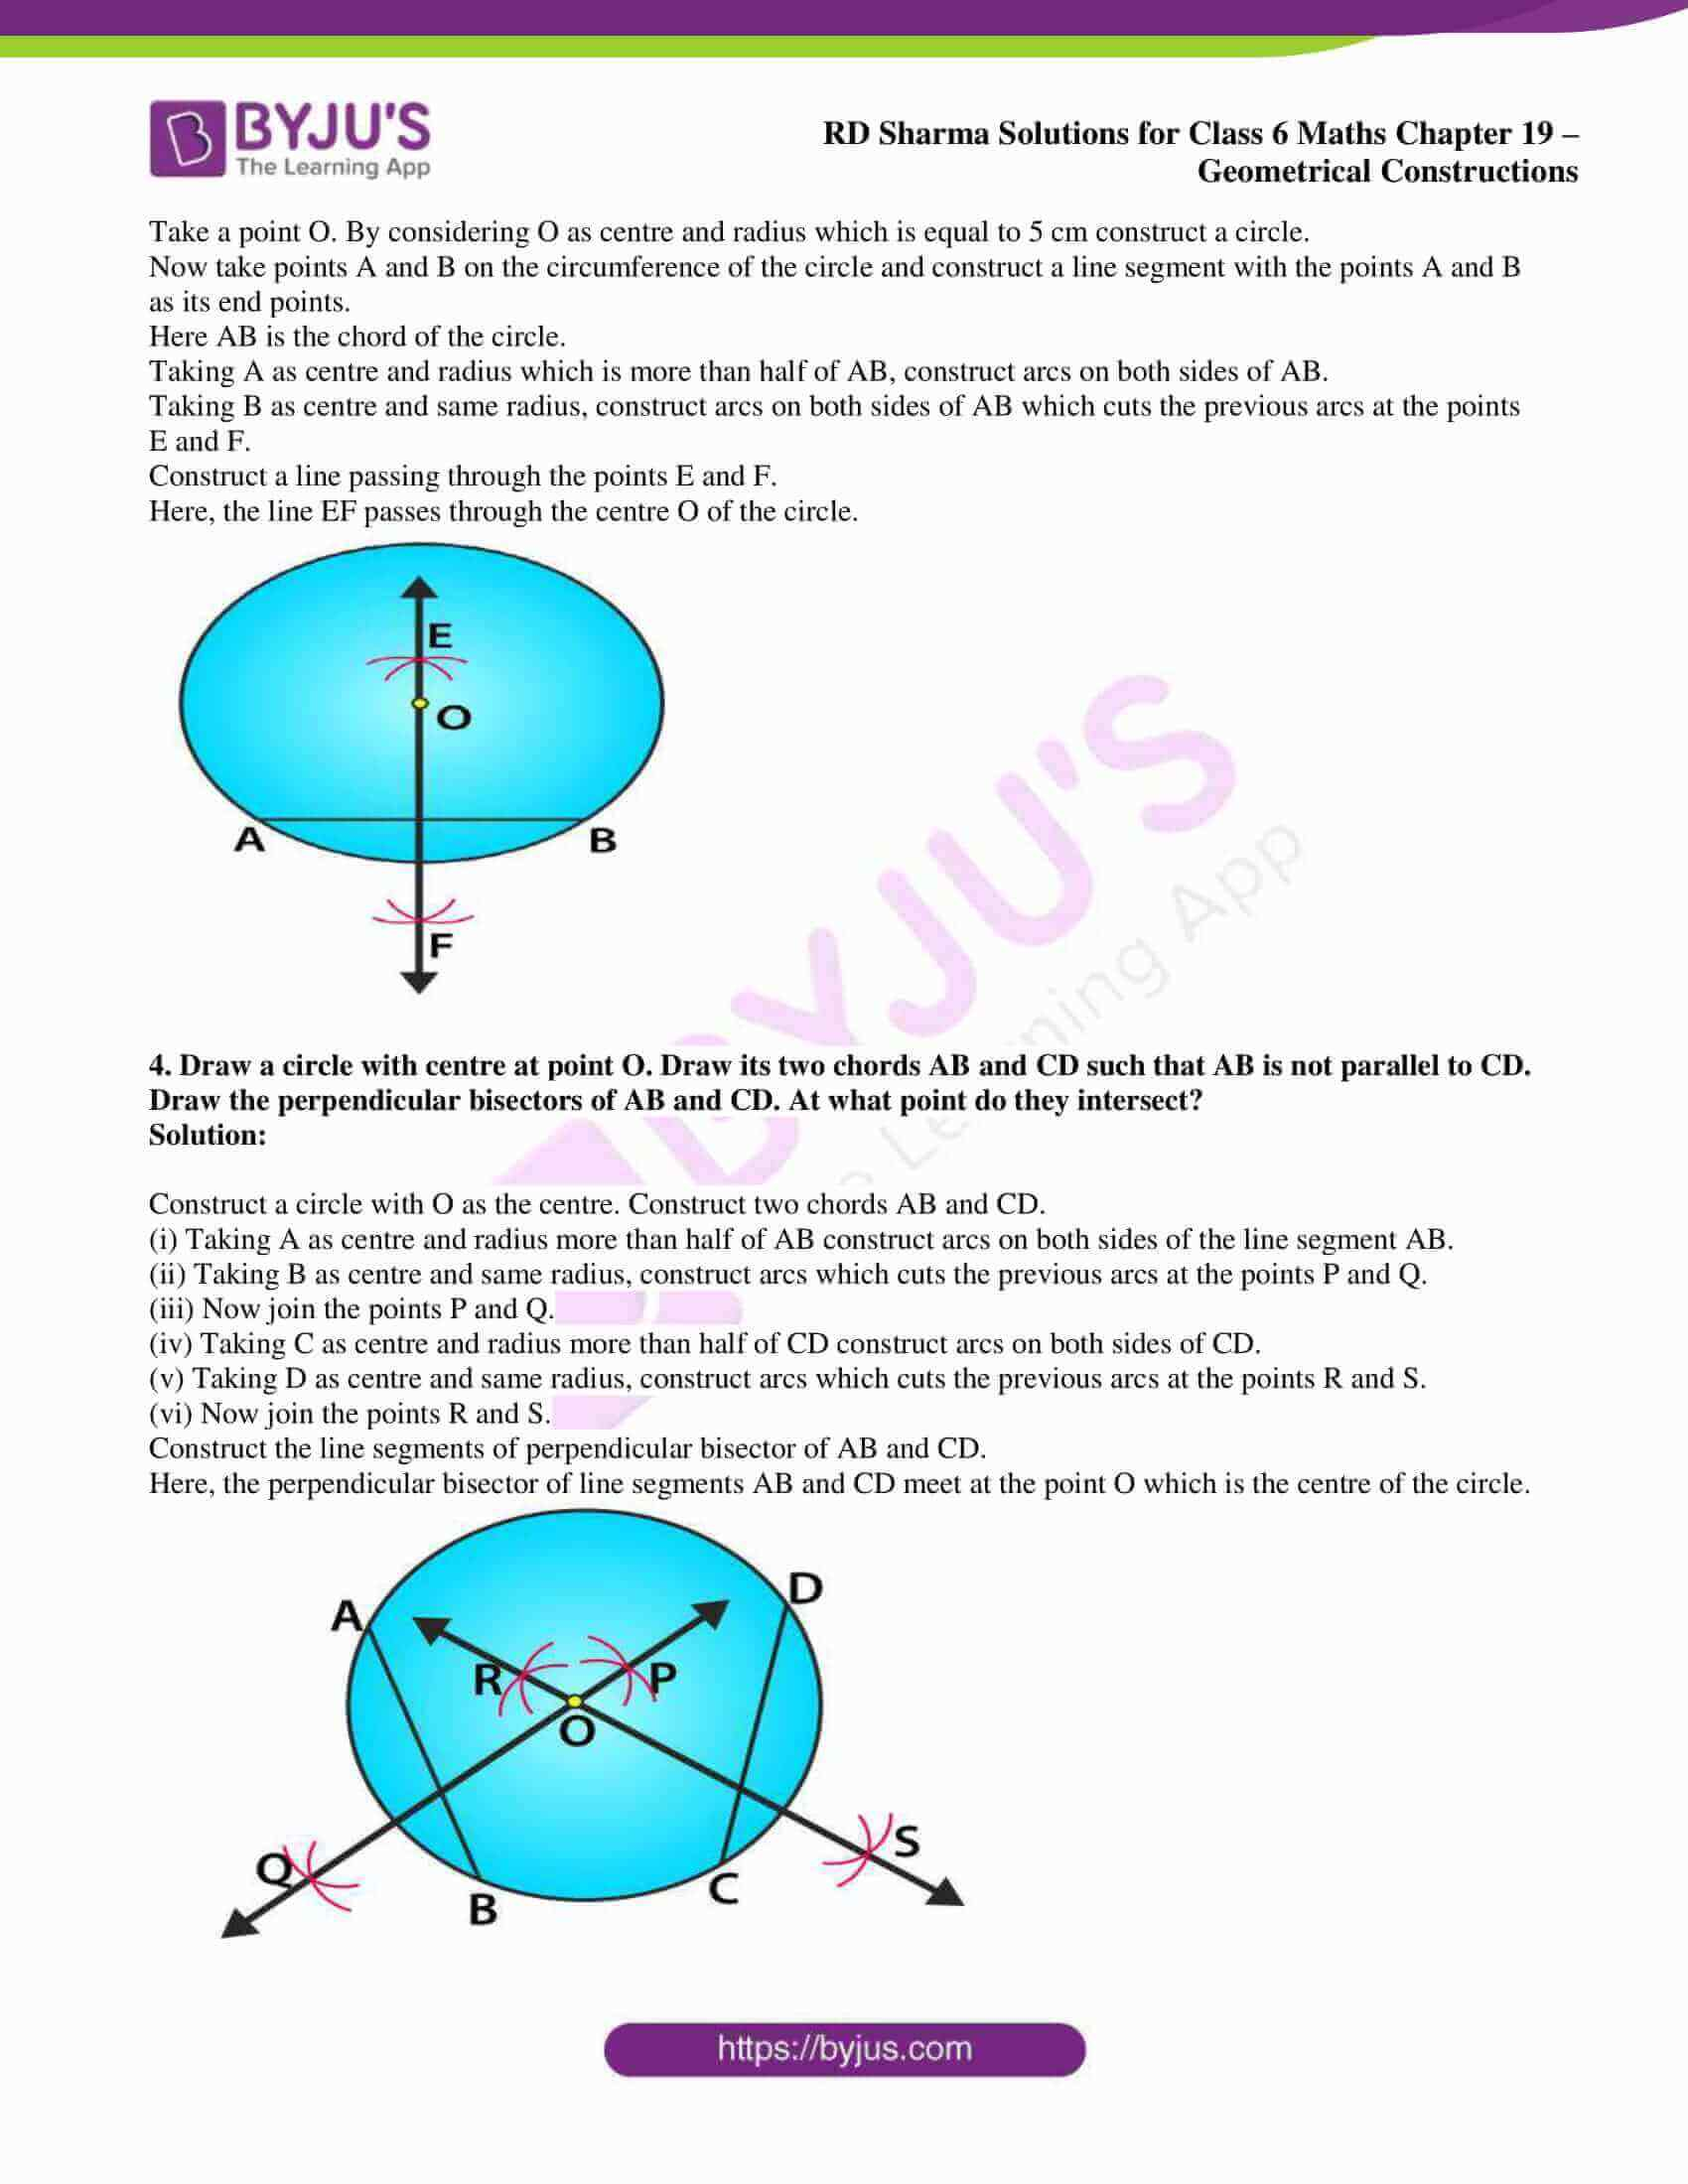 rd sharma solutions nov2020 class 6 maths chapter 19 exercise 3 2